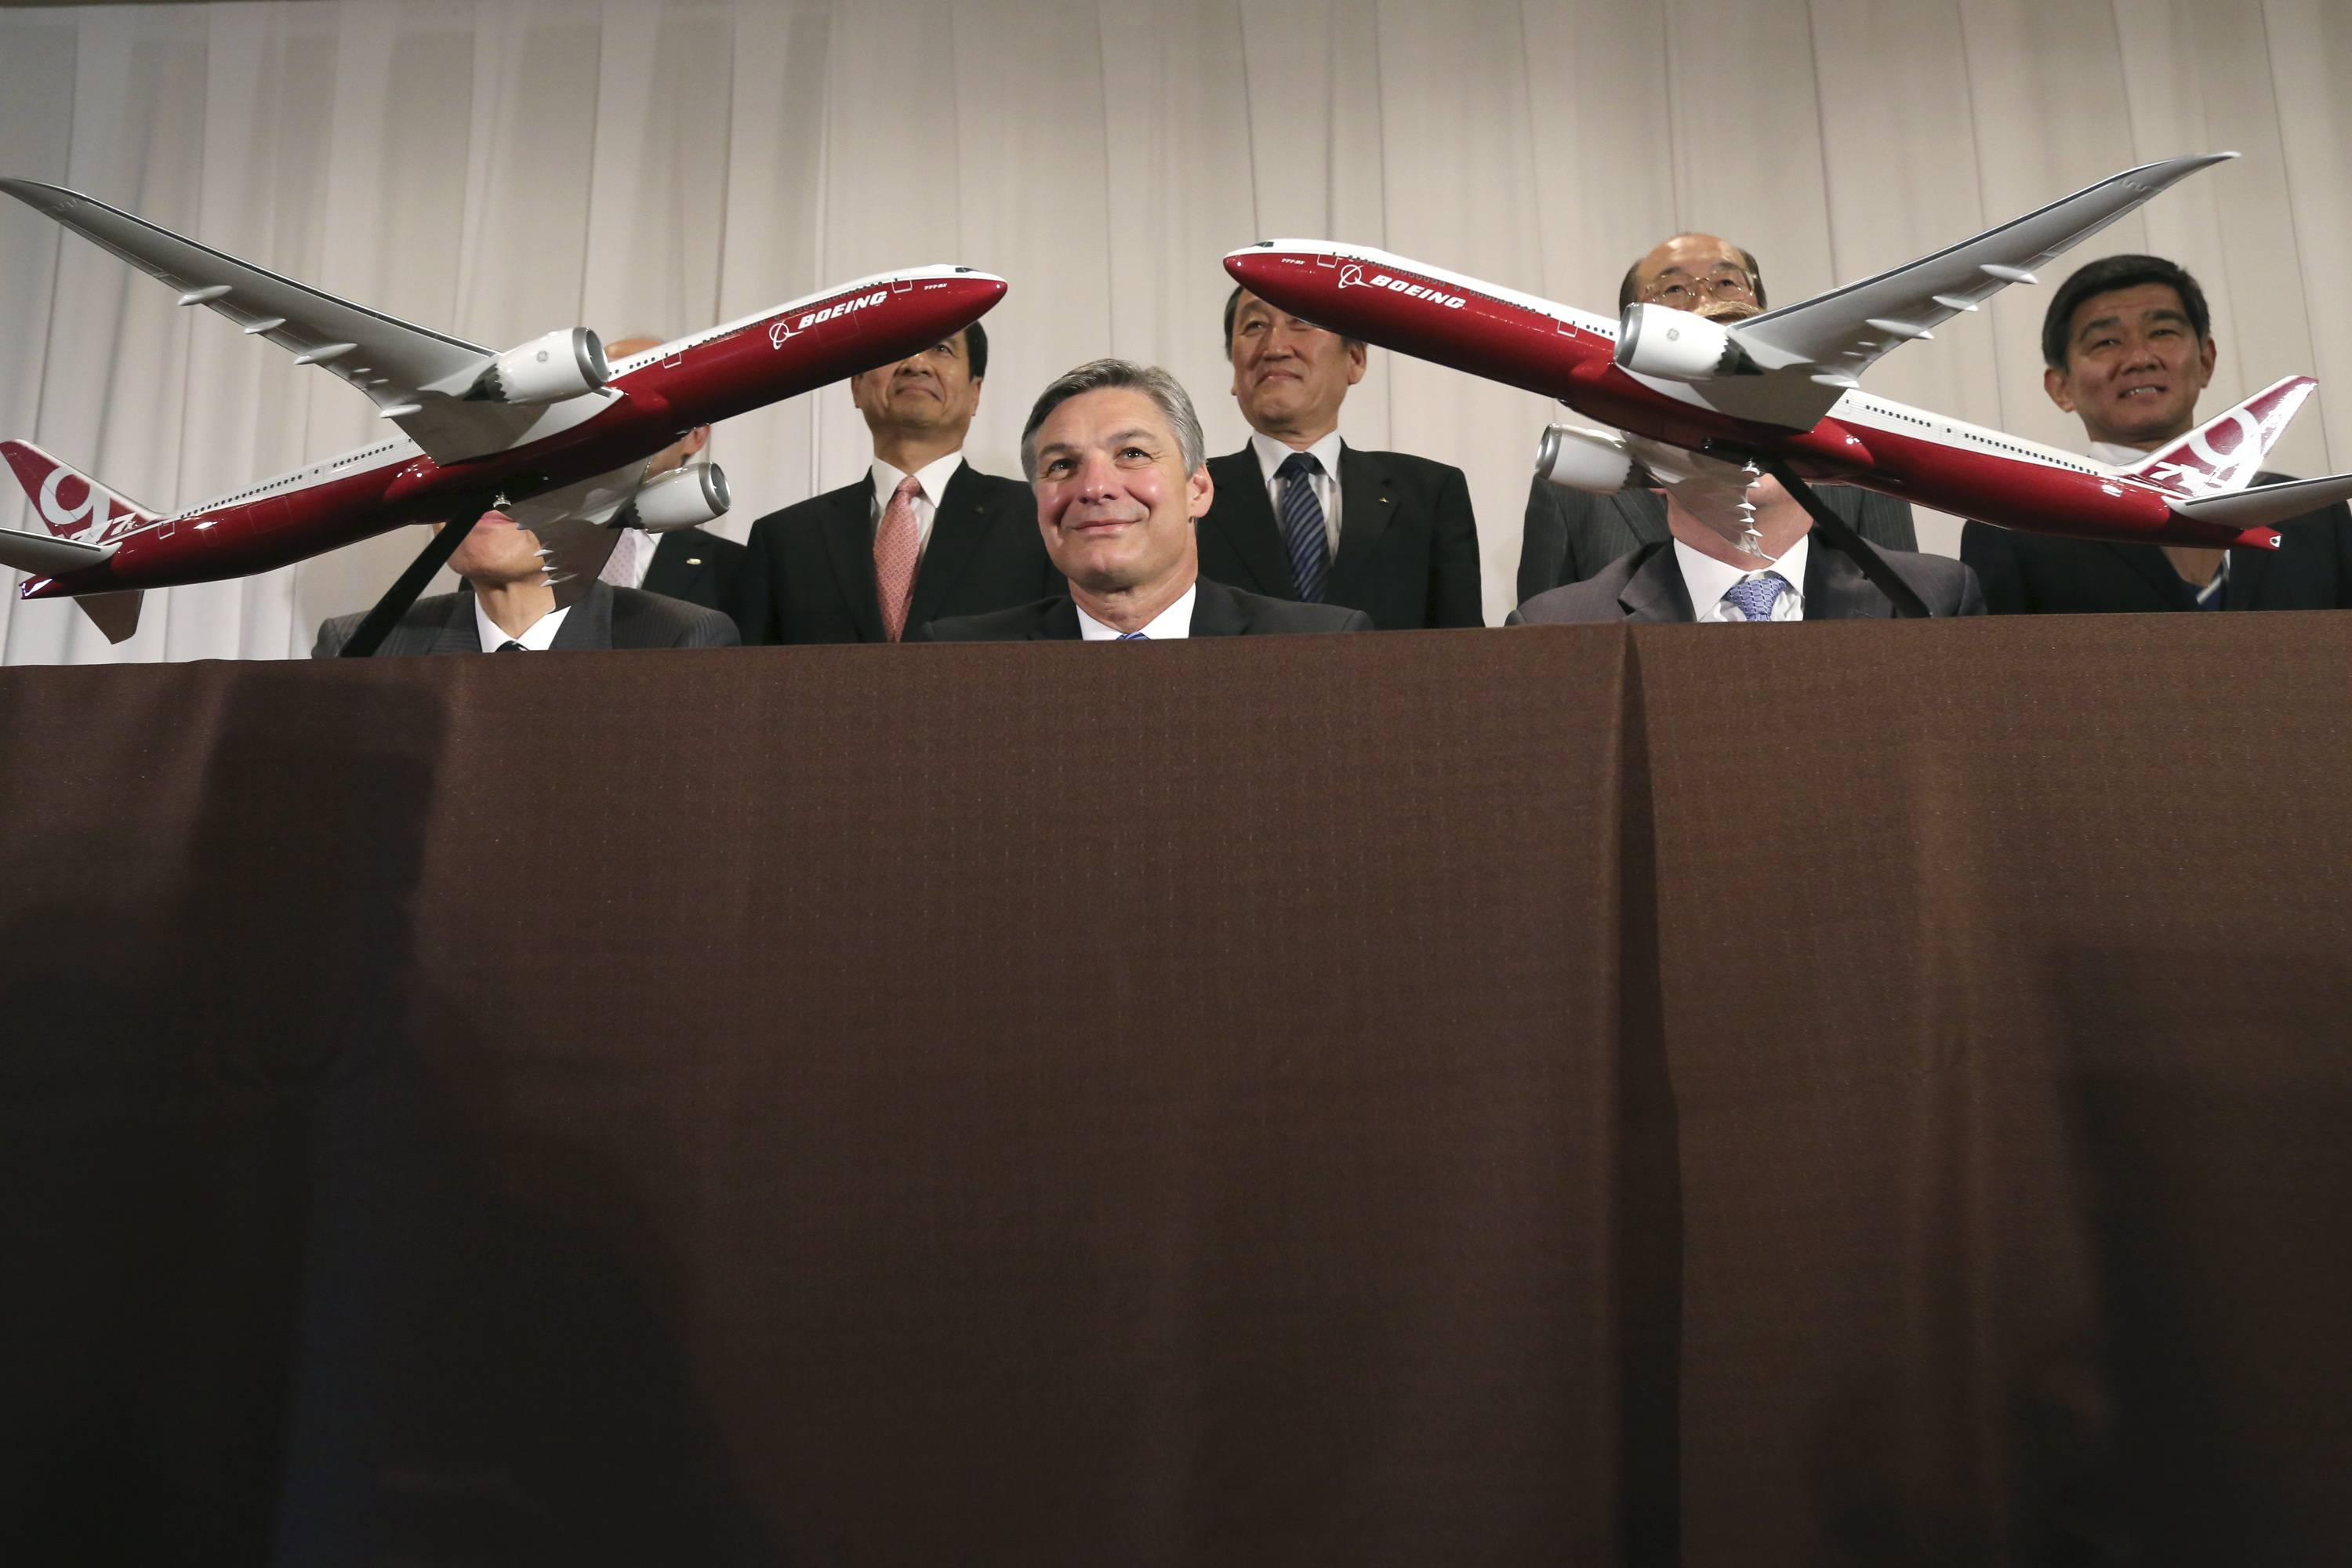 Ray Conner, center, vice chairman of The Boeing Company and president and chief executive officer of Boeing Commercial Airplanes, and representatives of Boeing and five Japanese companies after signing a deal to manufacture key components for Boeing's twin aisle 777X jets in Tokyo, Thursday.